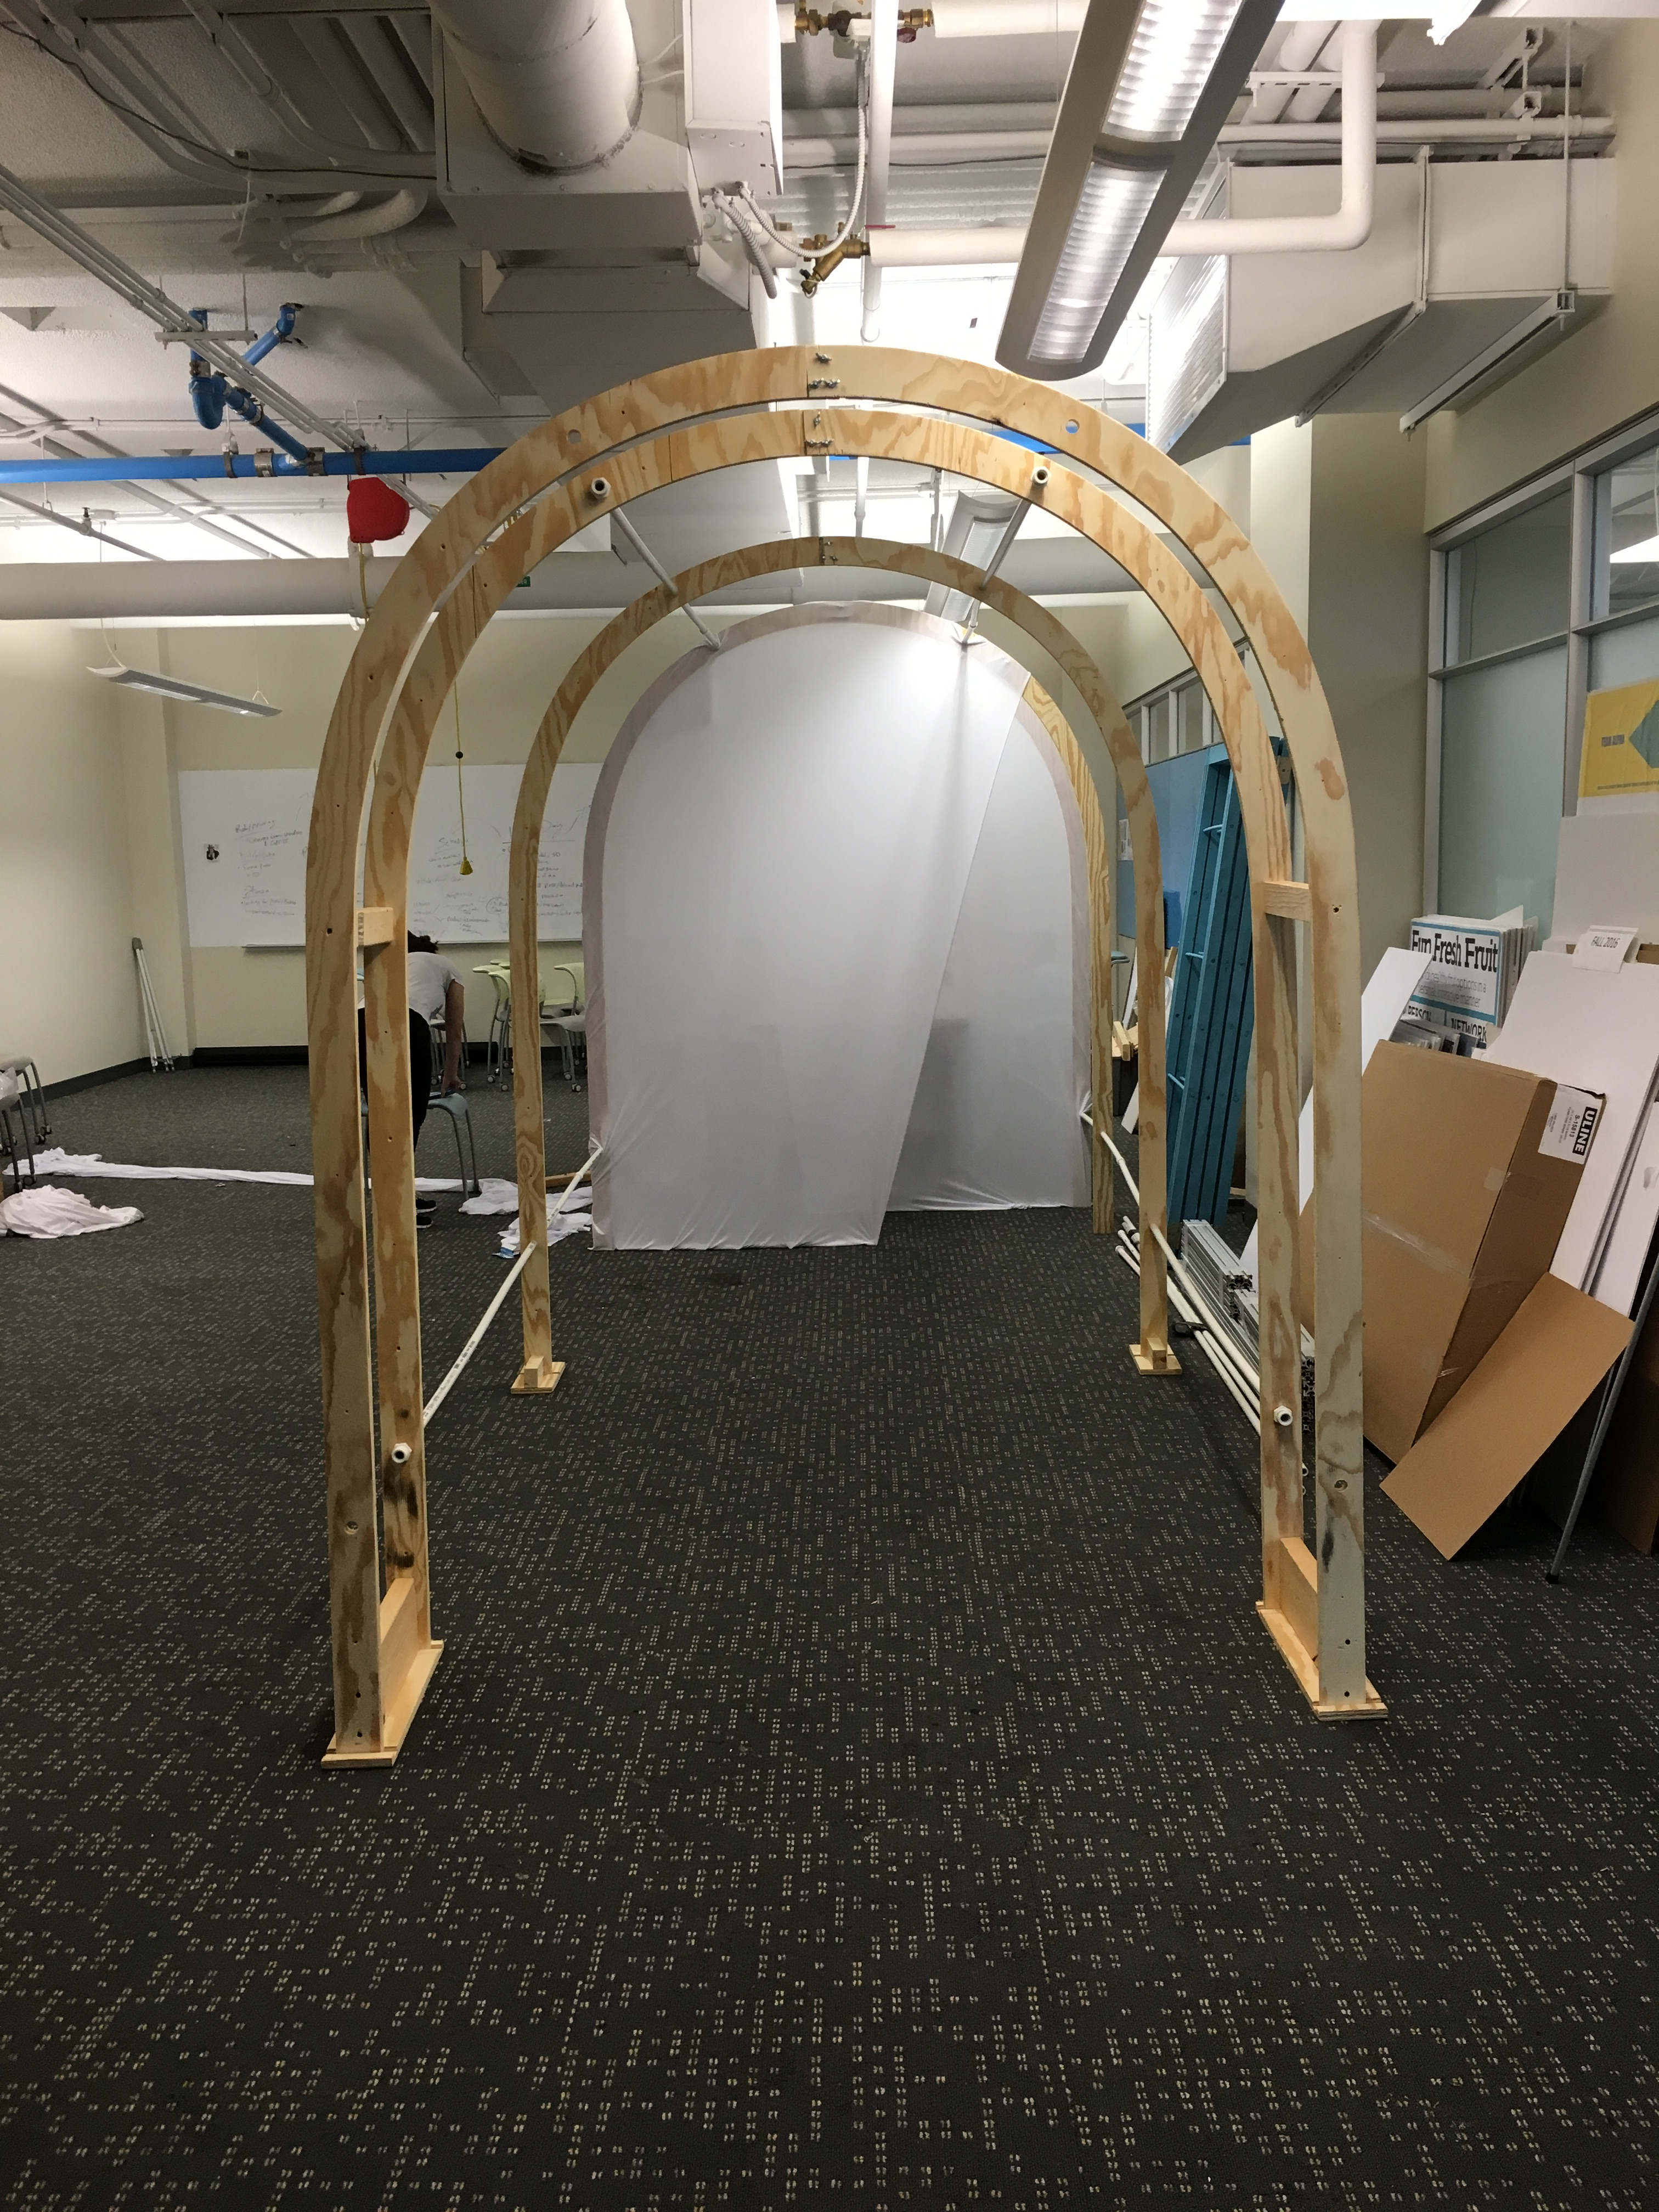 Beginning to add the fabric to the Tunnel frame - front view.